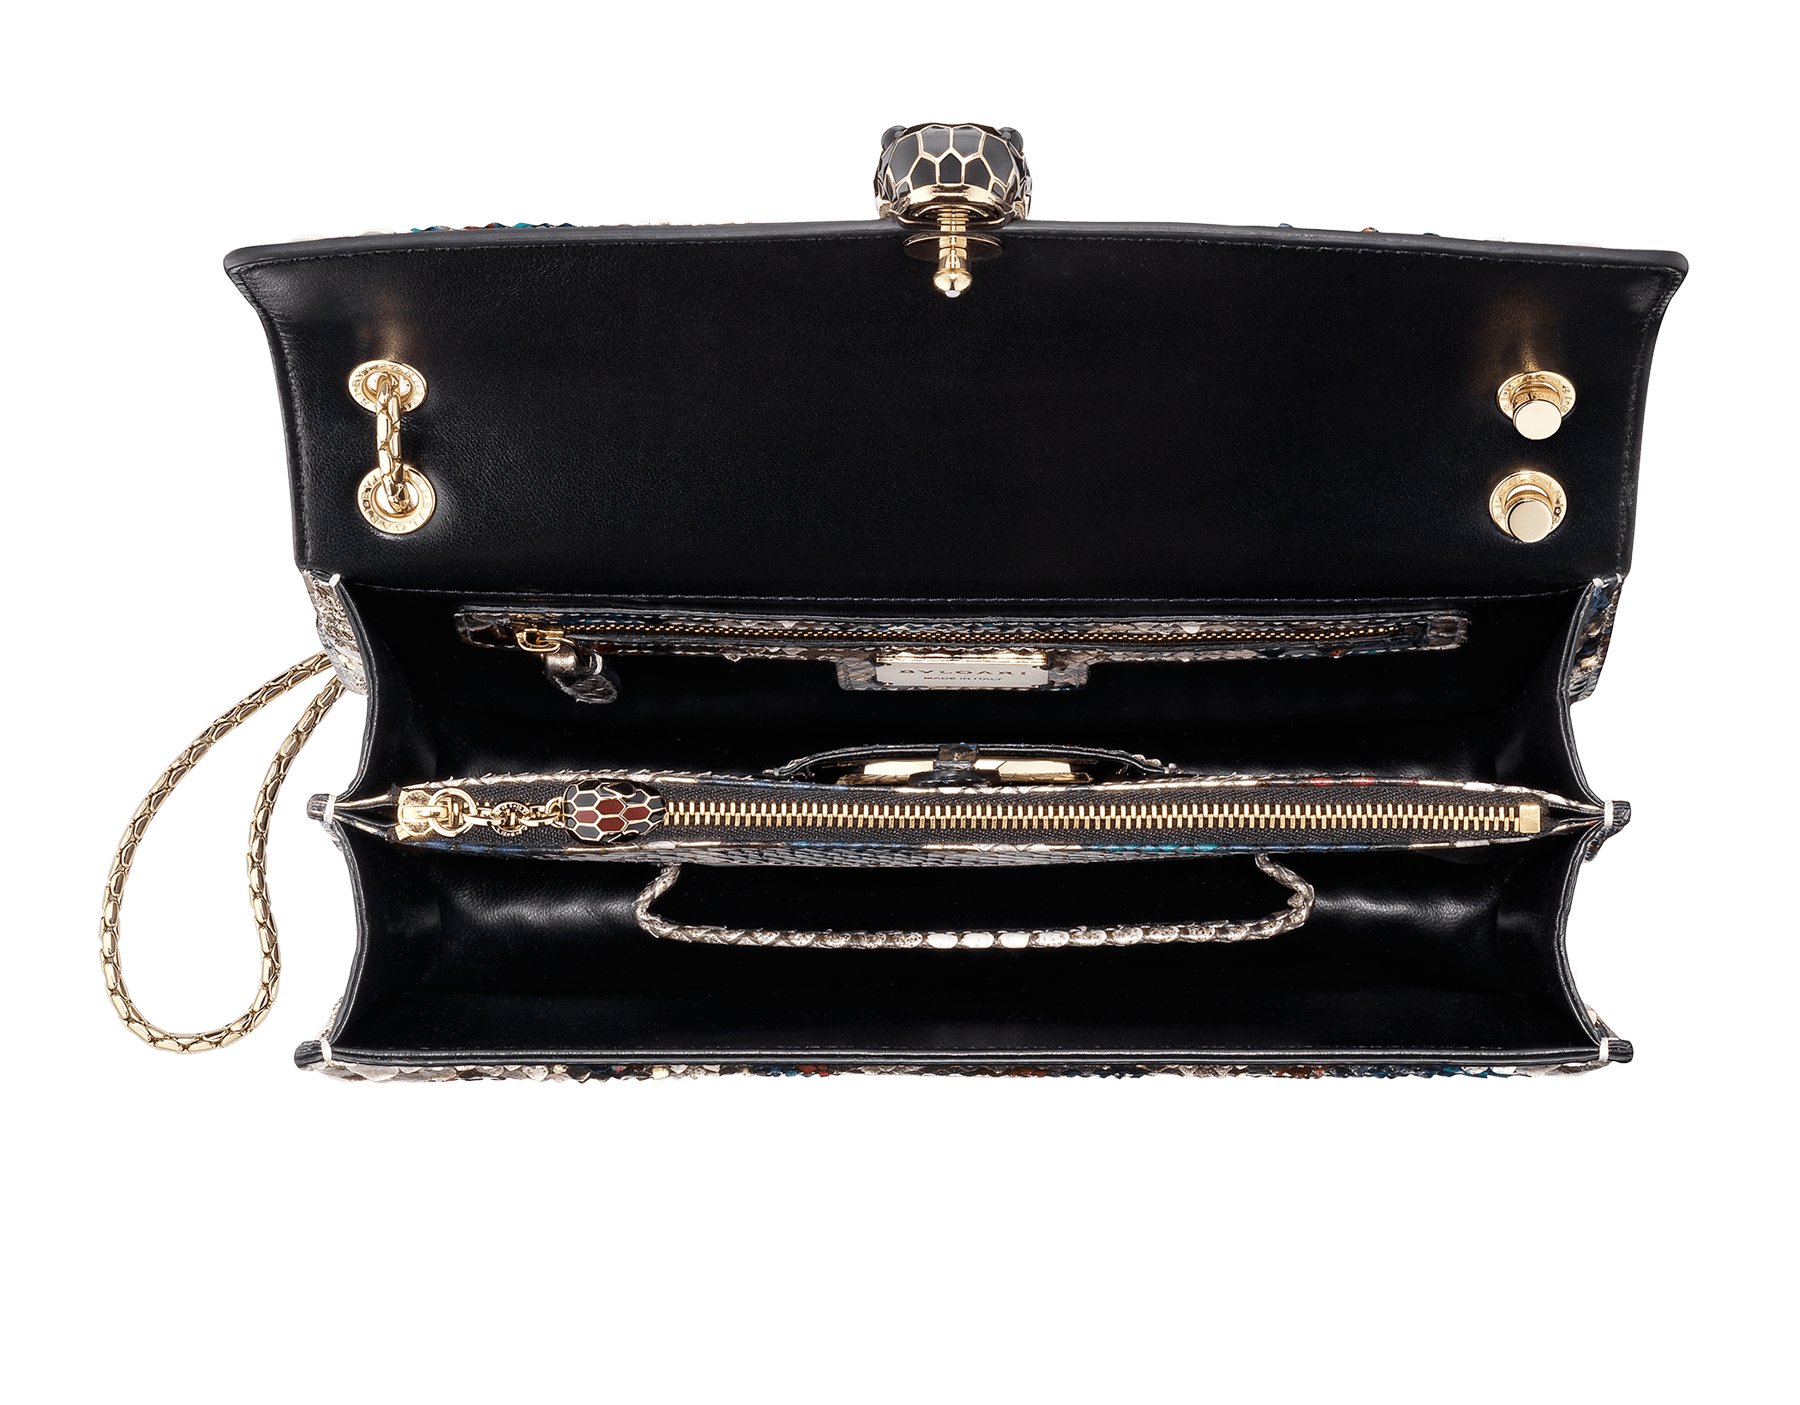 """Serpenti Forever"" shoulder bag in white agate Lunar python skin. Iconic snakehead closure in light gold plated brass enriched with black and roman garnet enamel and black onyx eyes. 521-Pa image 5"